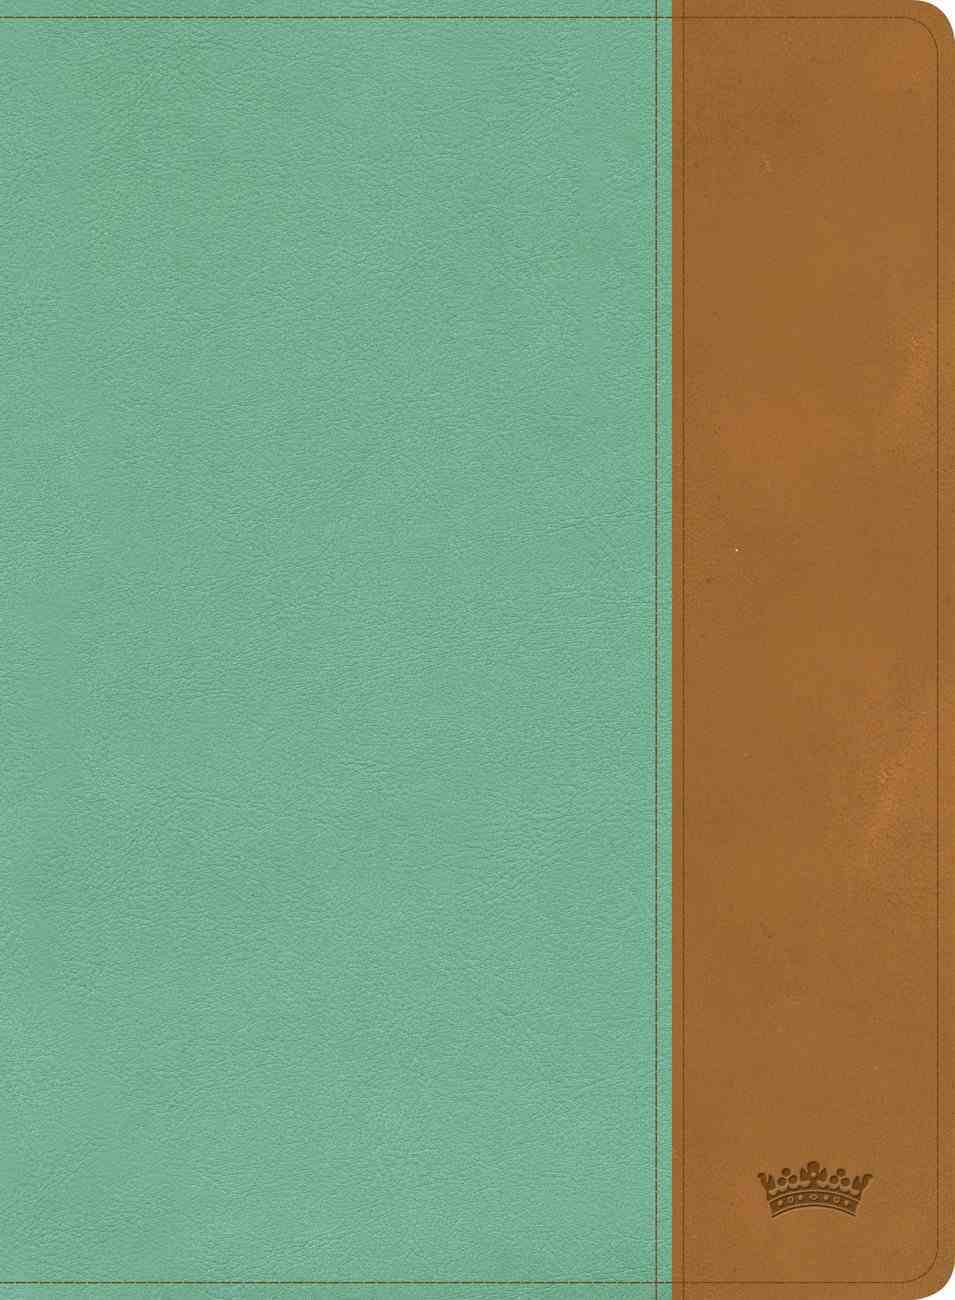 CSB Tony Evans Study Bible Teal/Earth Imitation Leather